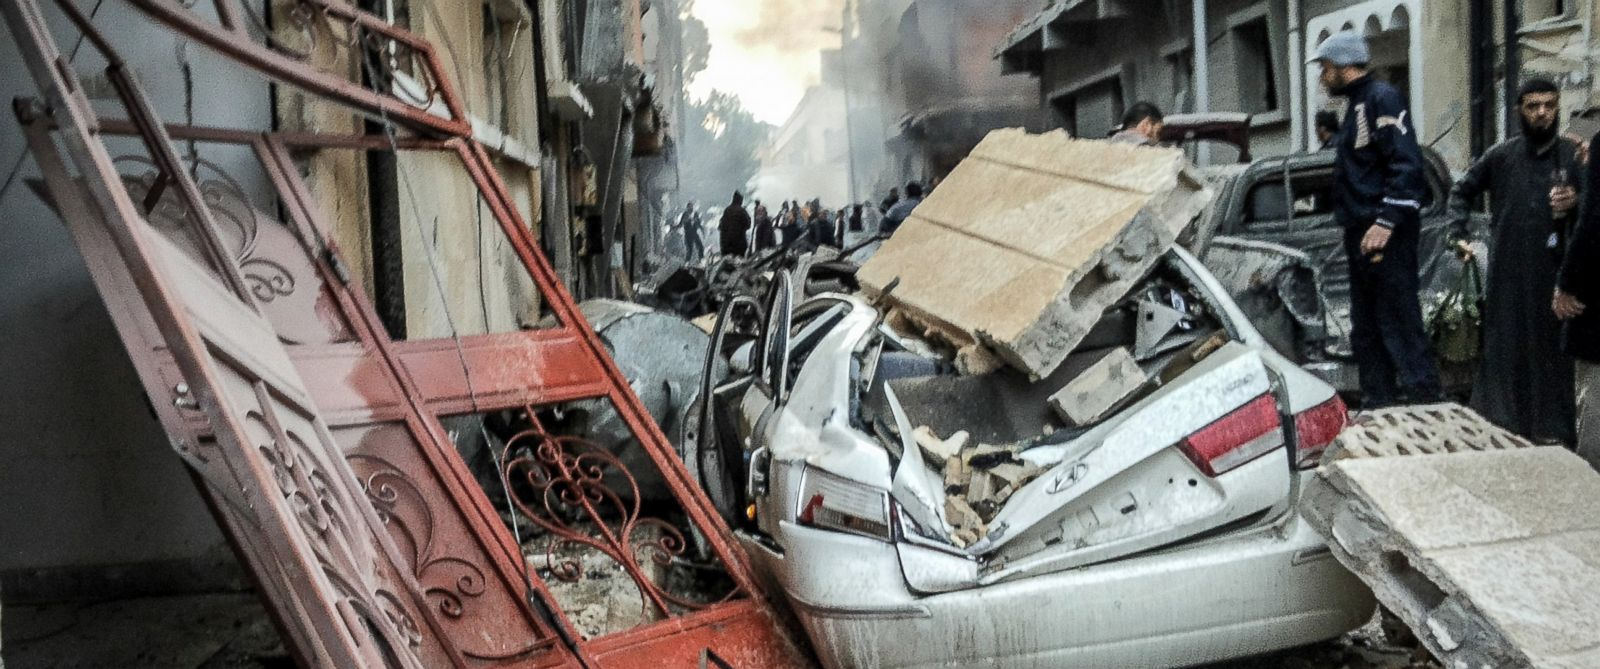 PHOTO: Destroyed buildings seen after Egypts army warplanes carried out airstrikes in Libya